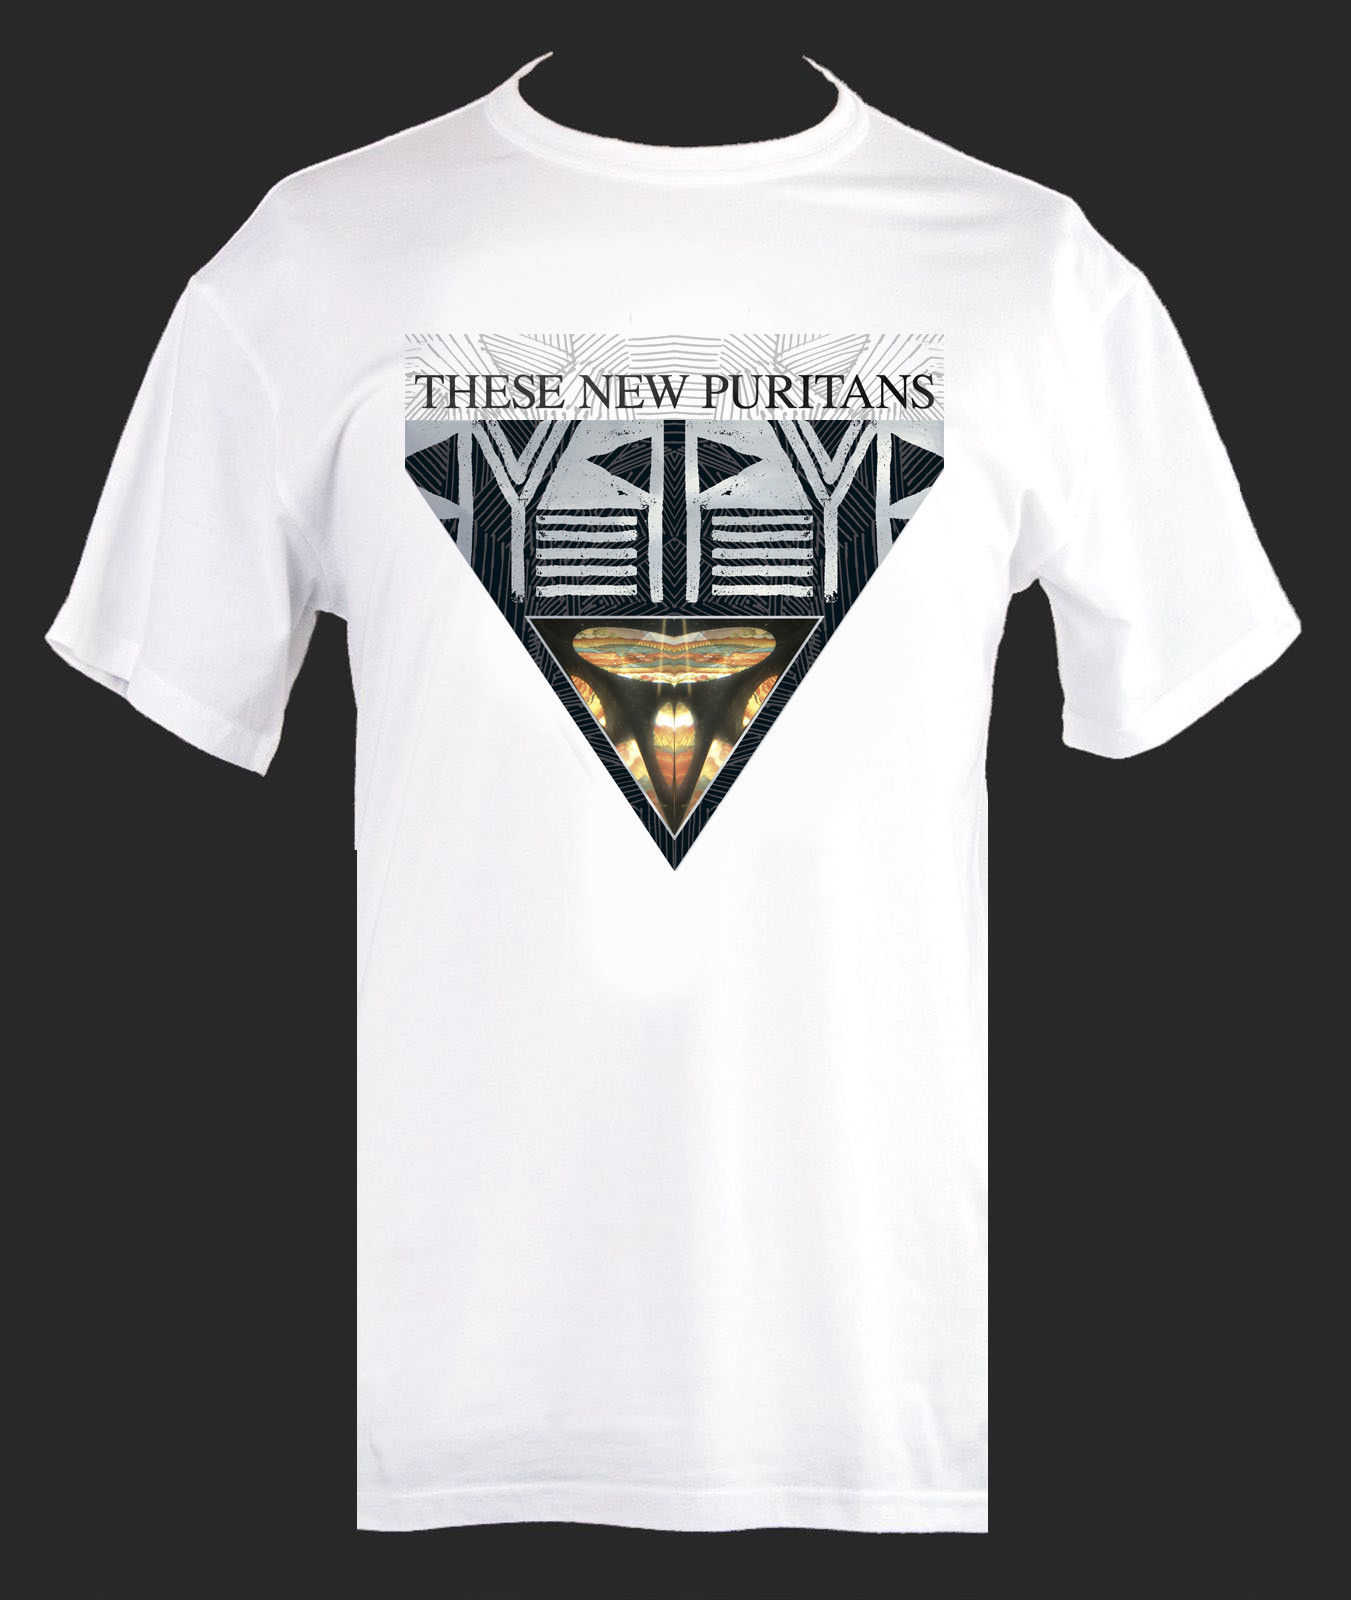 These New Puritans Tshirt Beat Pyramid T Shirt All Sizes 2018 New